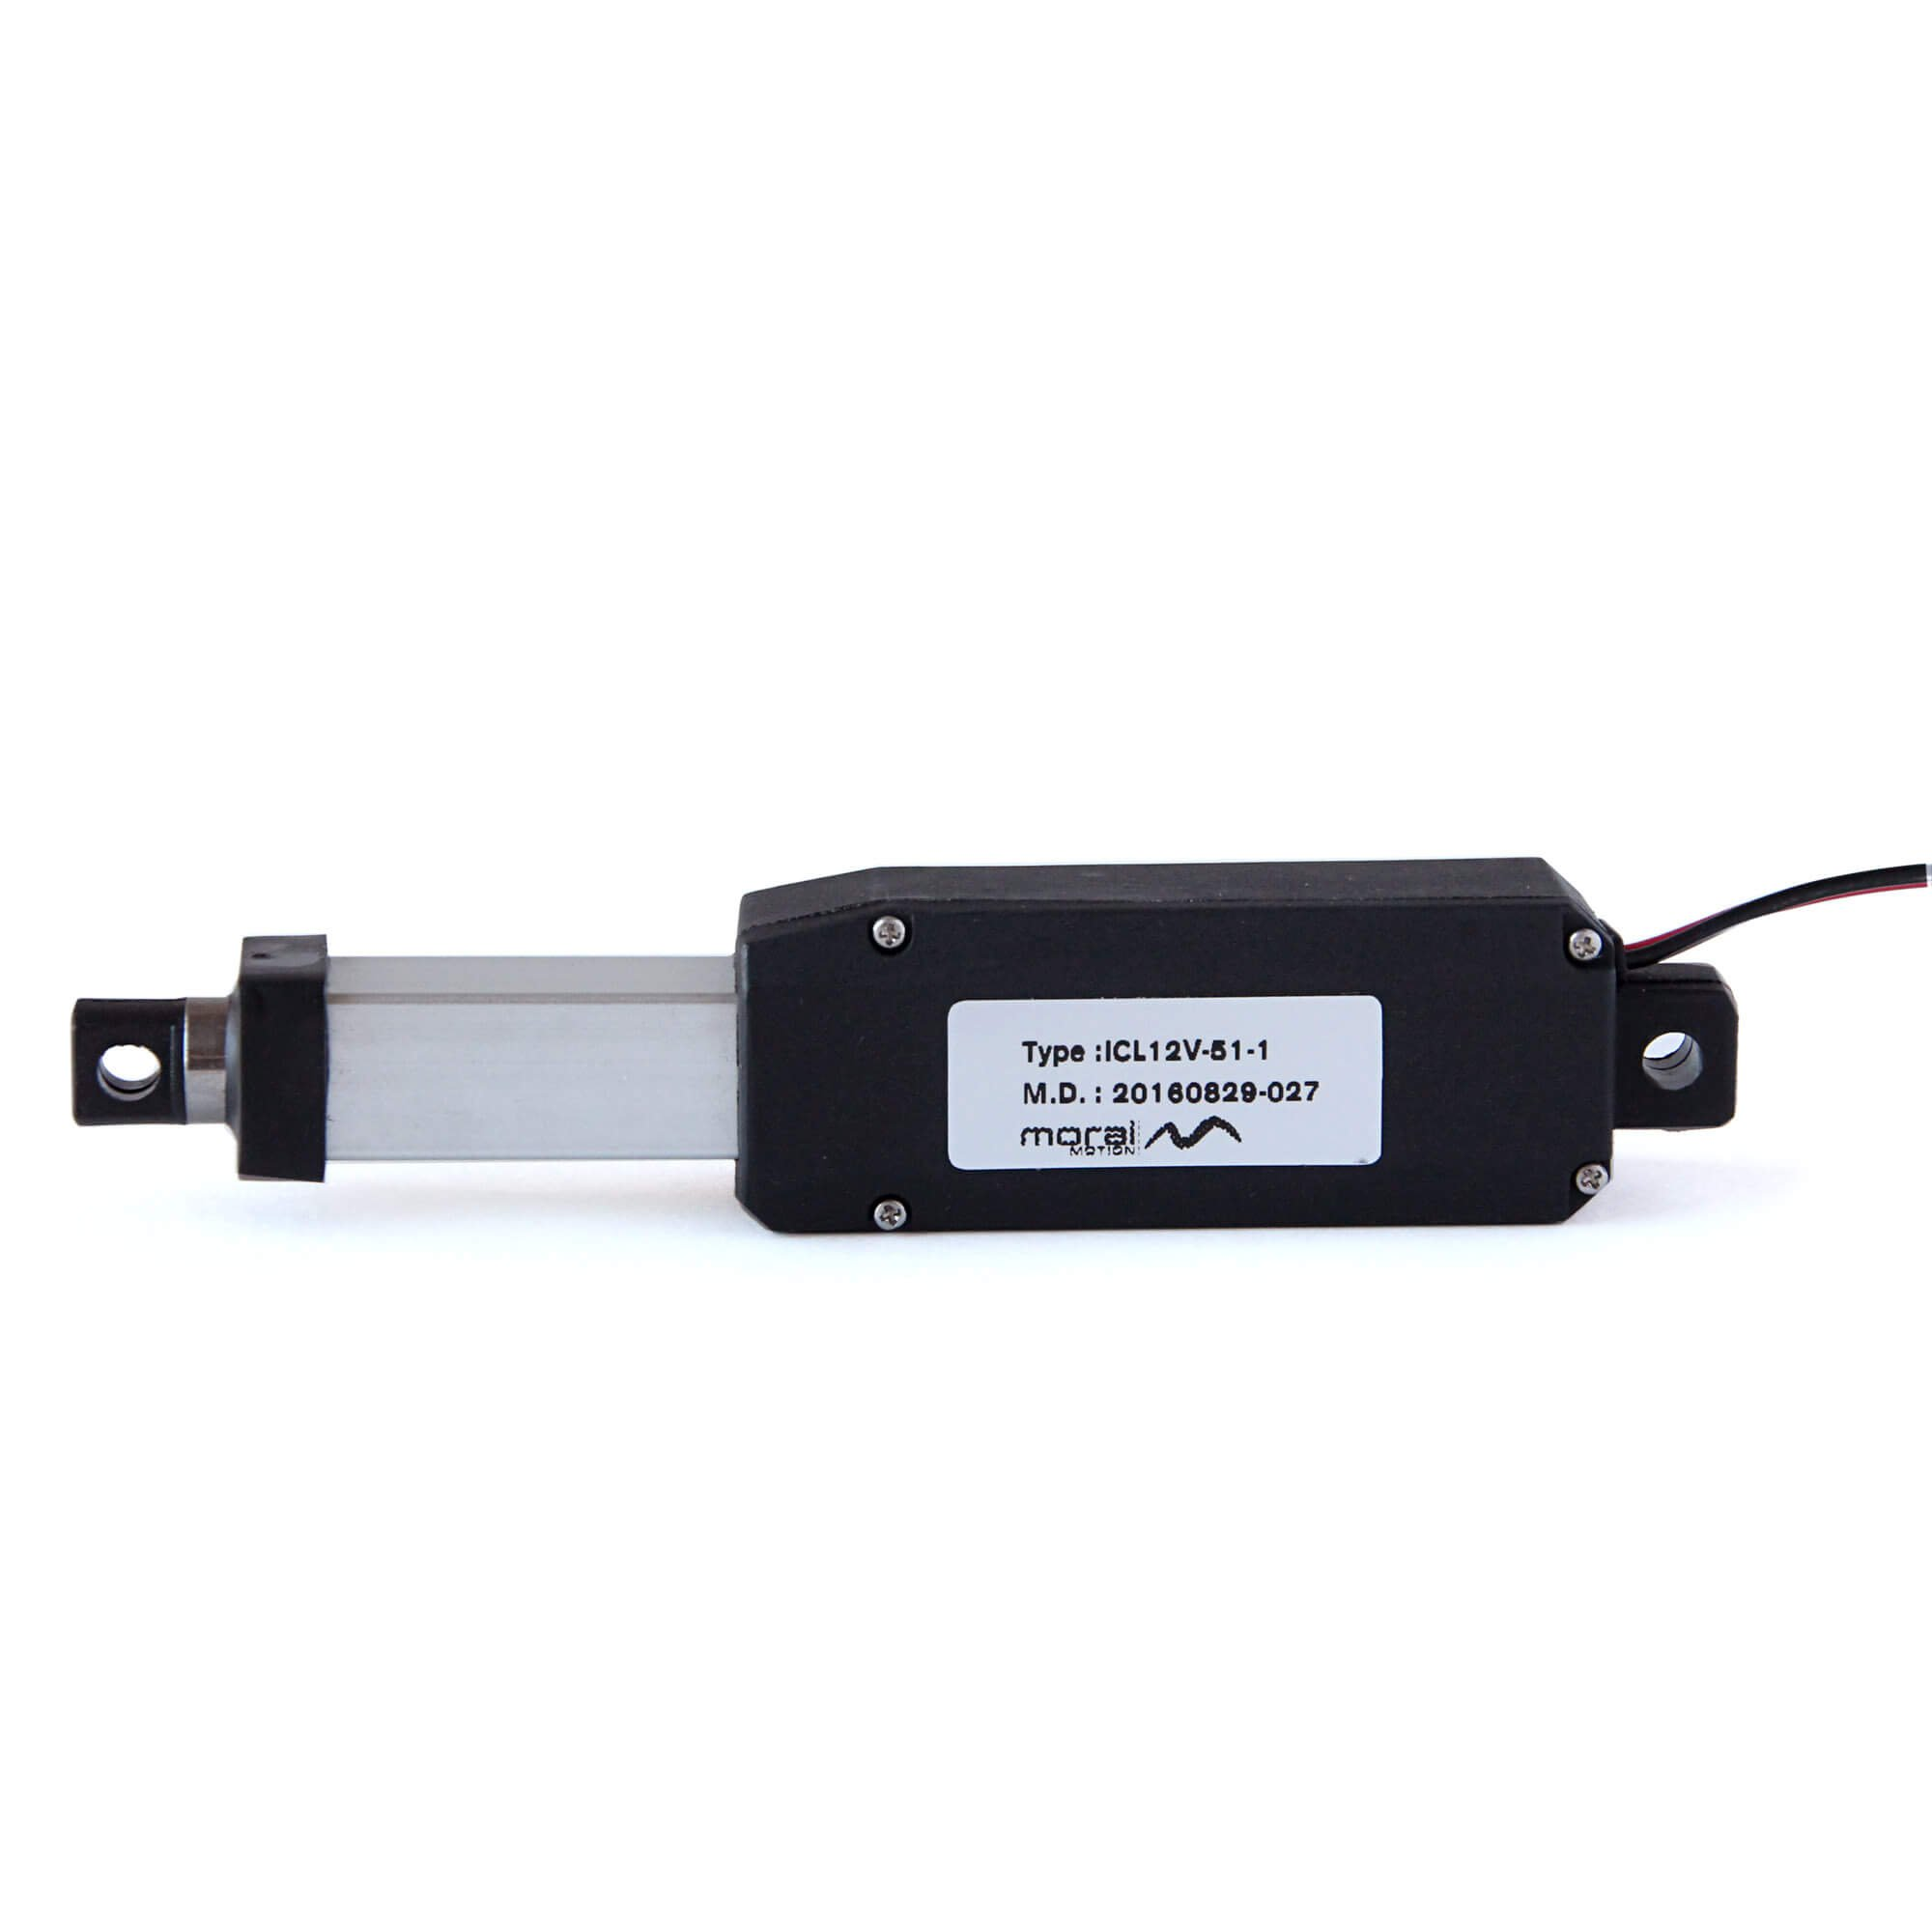 inline nexus micro linear actuator 1 inch stroke from. Black Bedroom Furniture Sets. Home Design Ideas